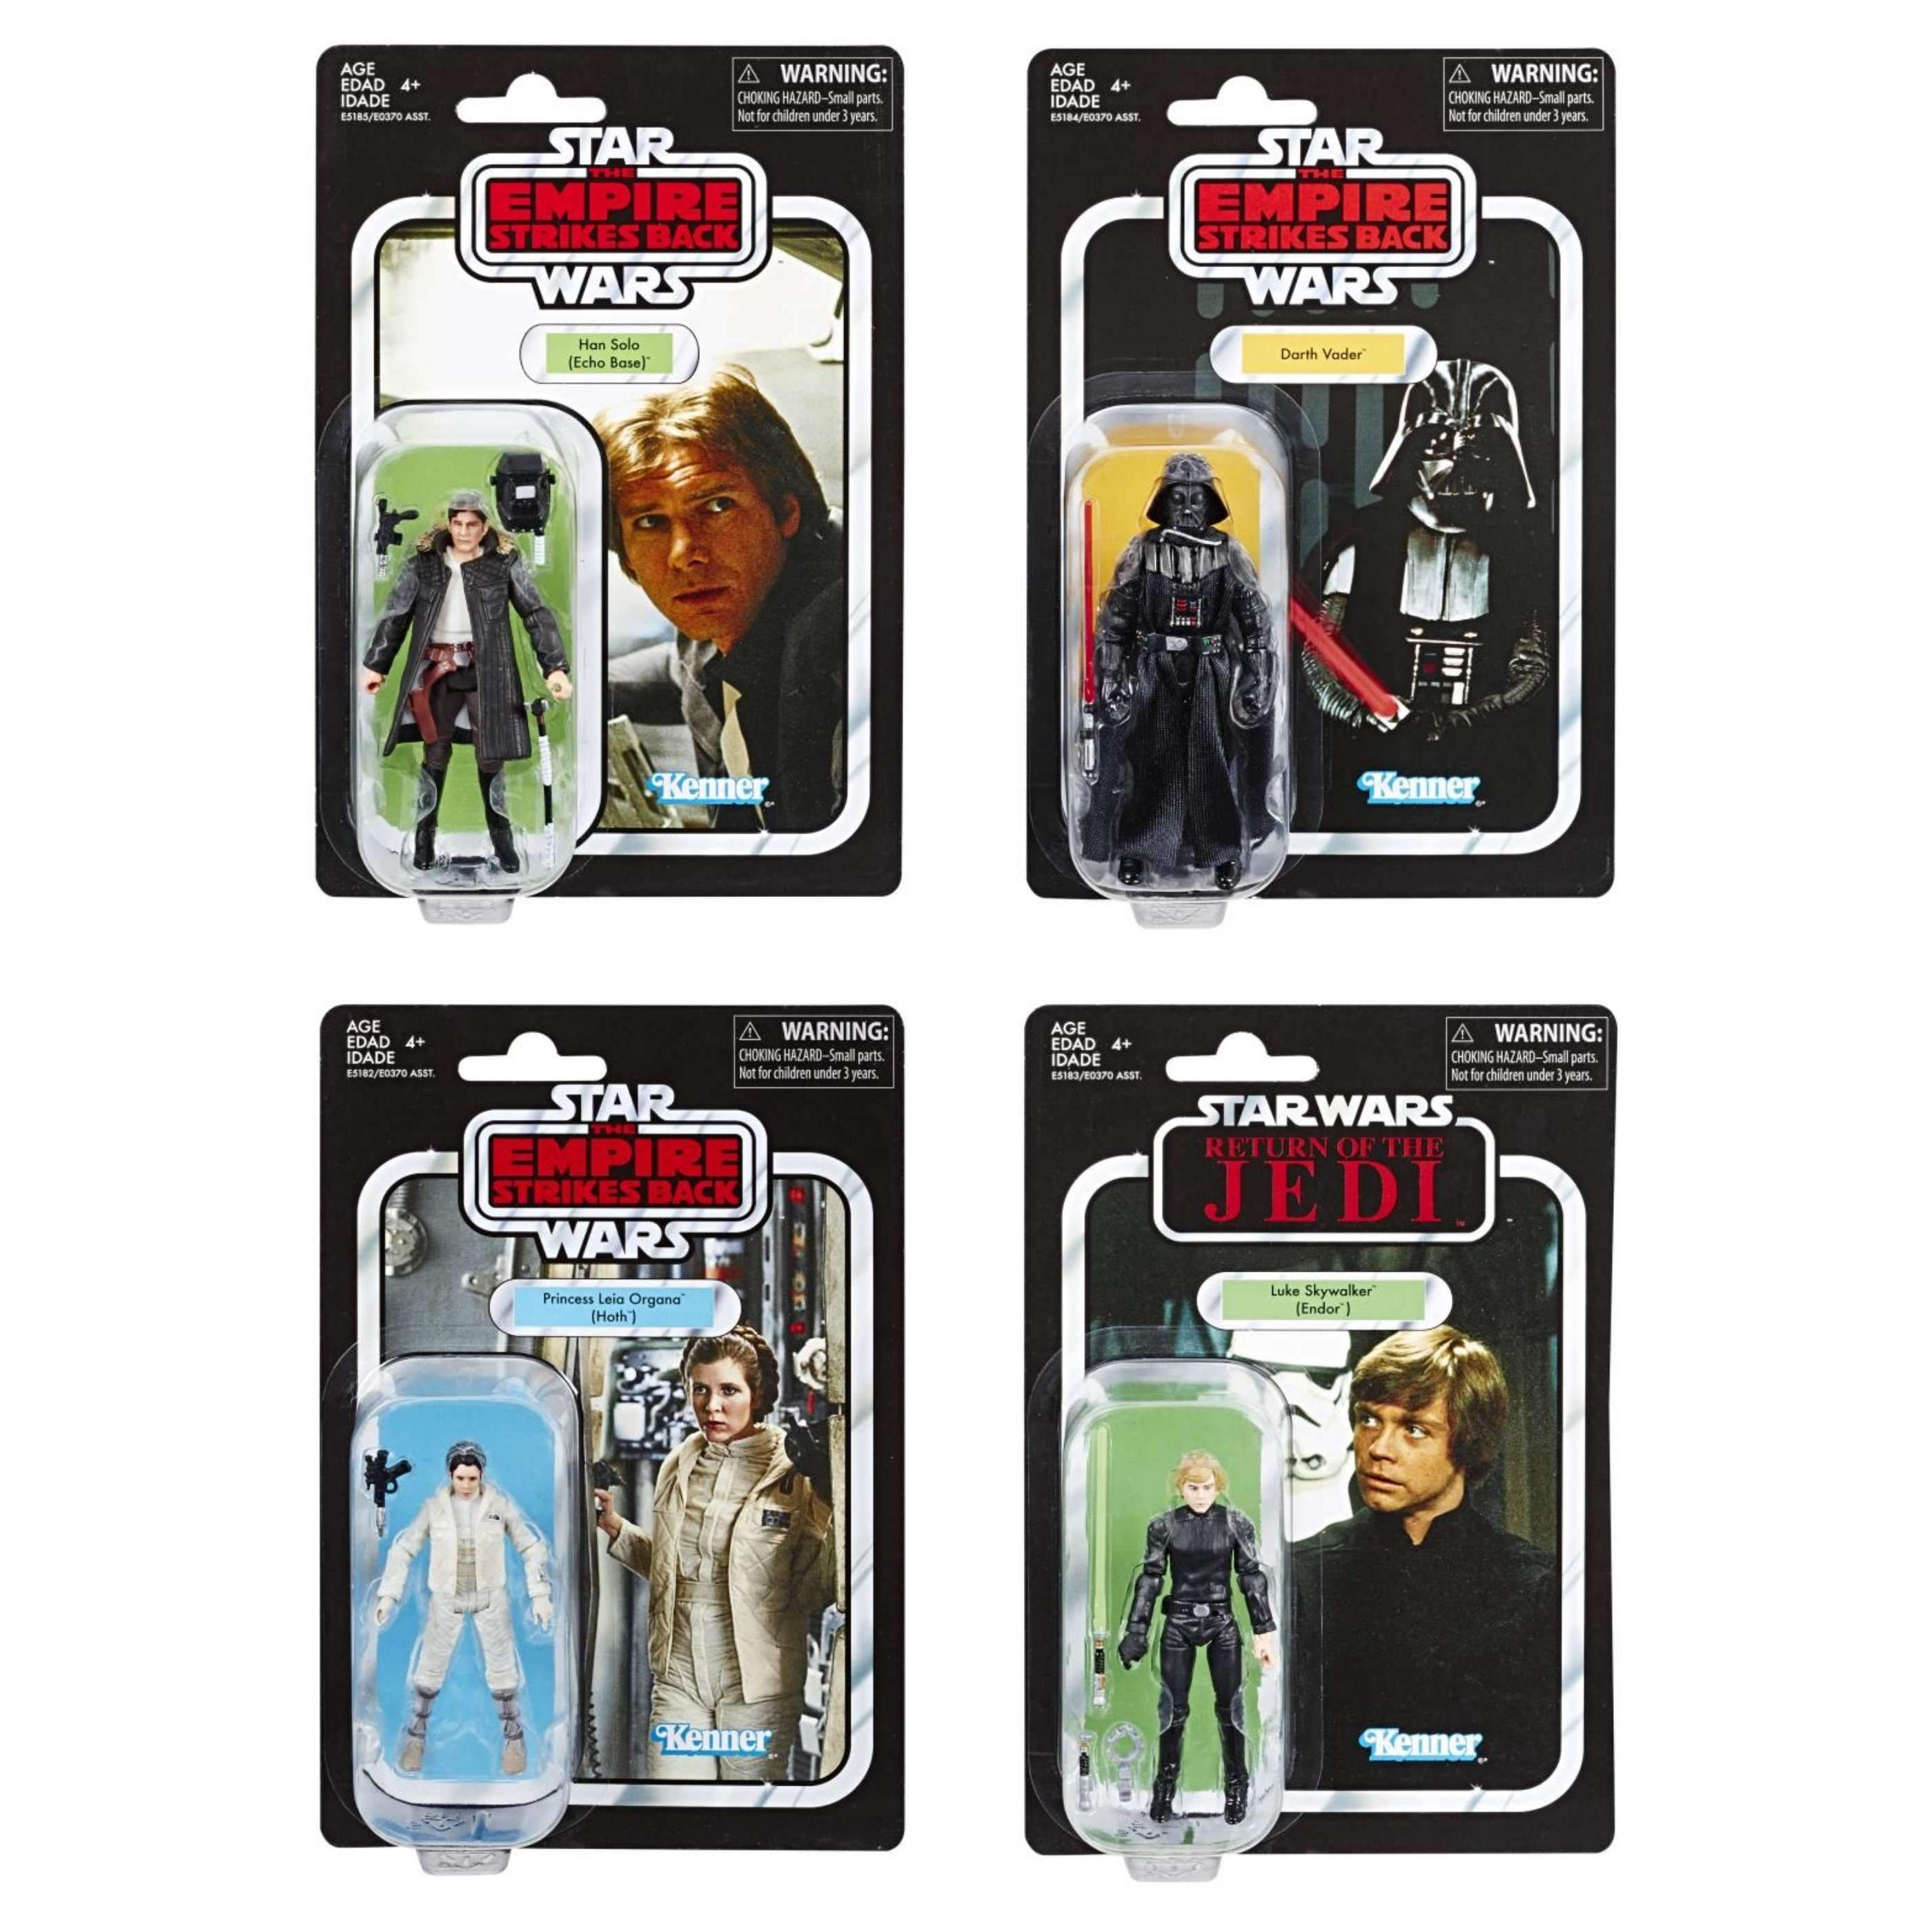 93a6880cc2f6 ... Star Wars The Vintage Collection Action Figures Wave 5 - Set of 4 ...